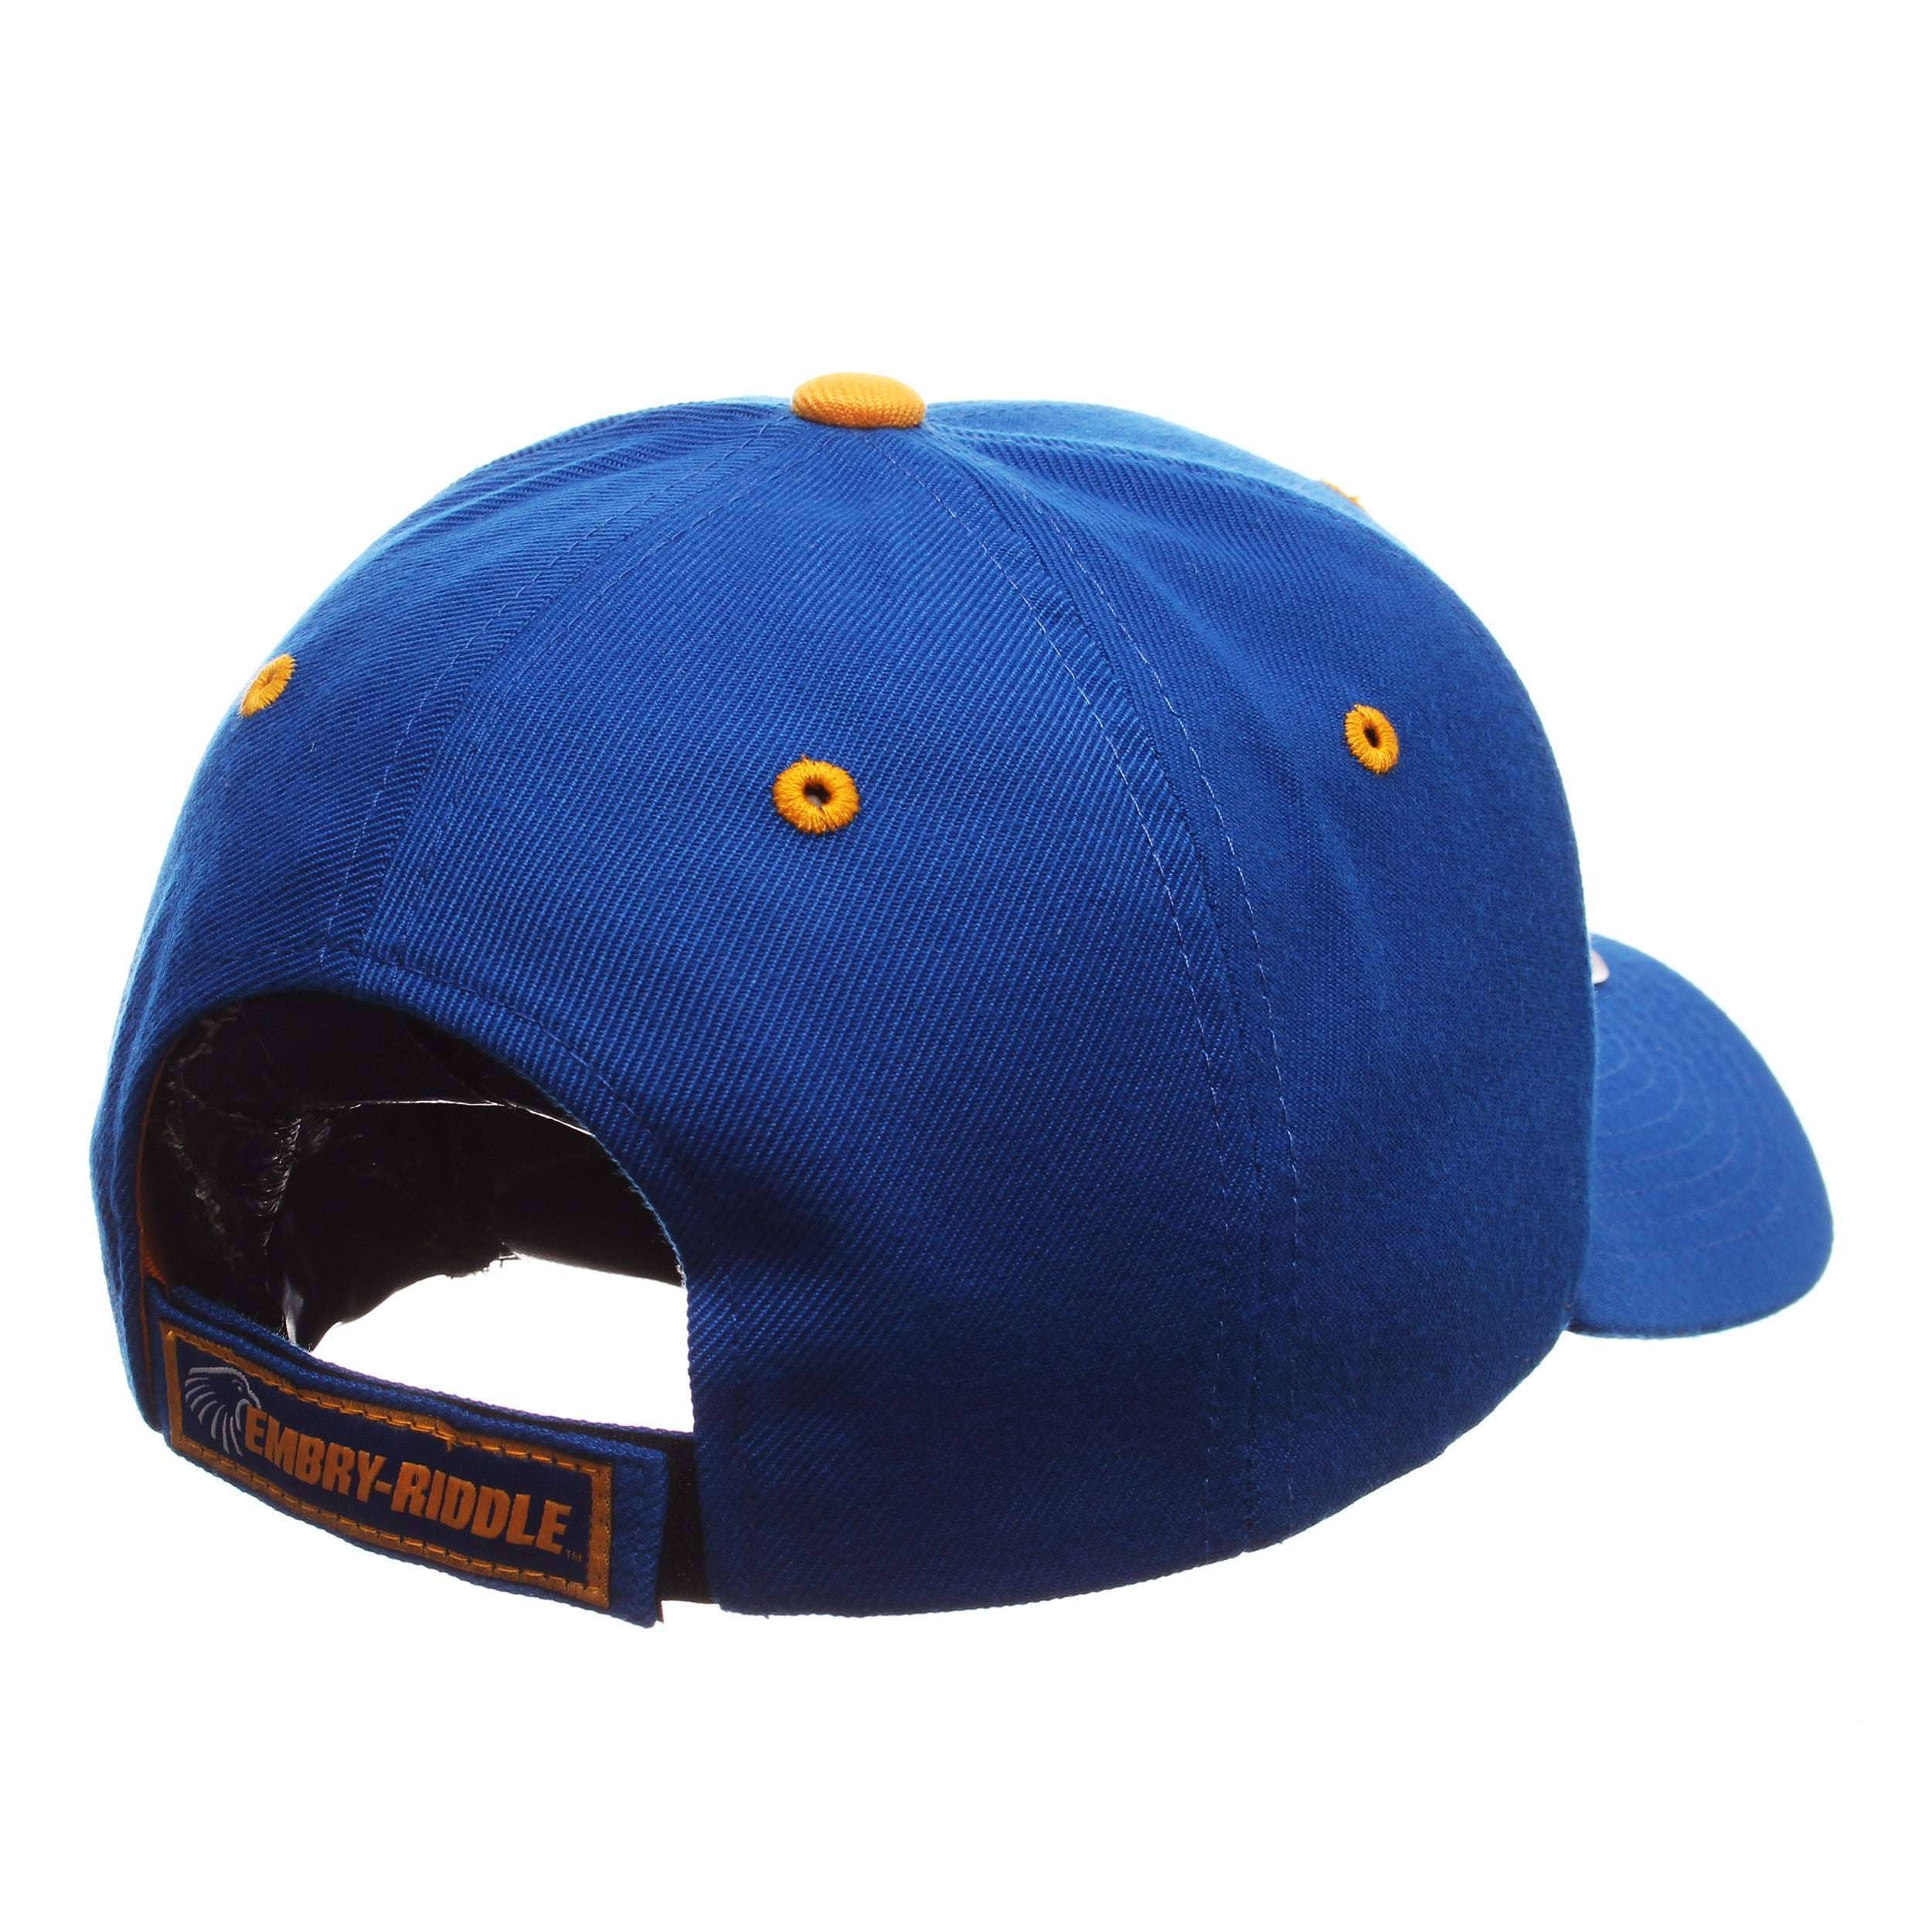 Embry Riddle Aeronautical University (Daytona) Competitor Standard (Low) (ER) Royal Surf Zwool Adjustable hats by Zephyr